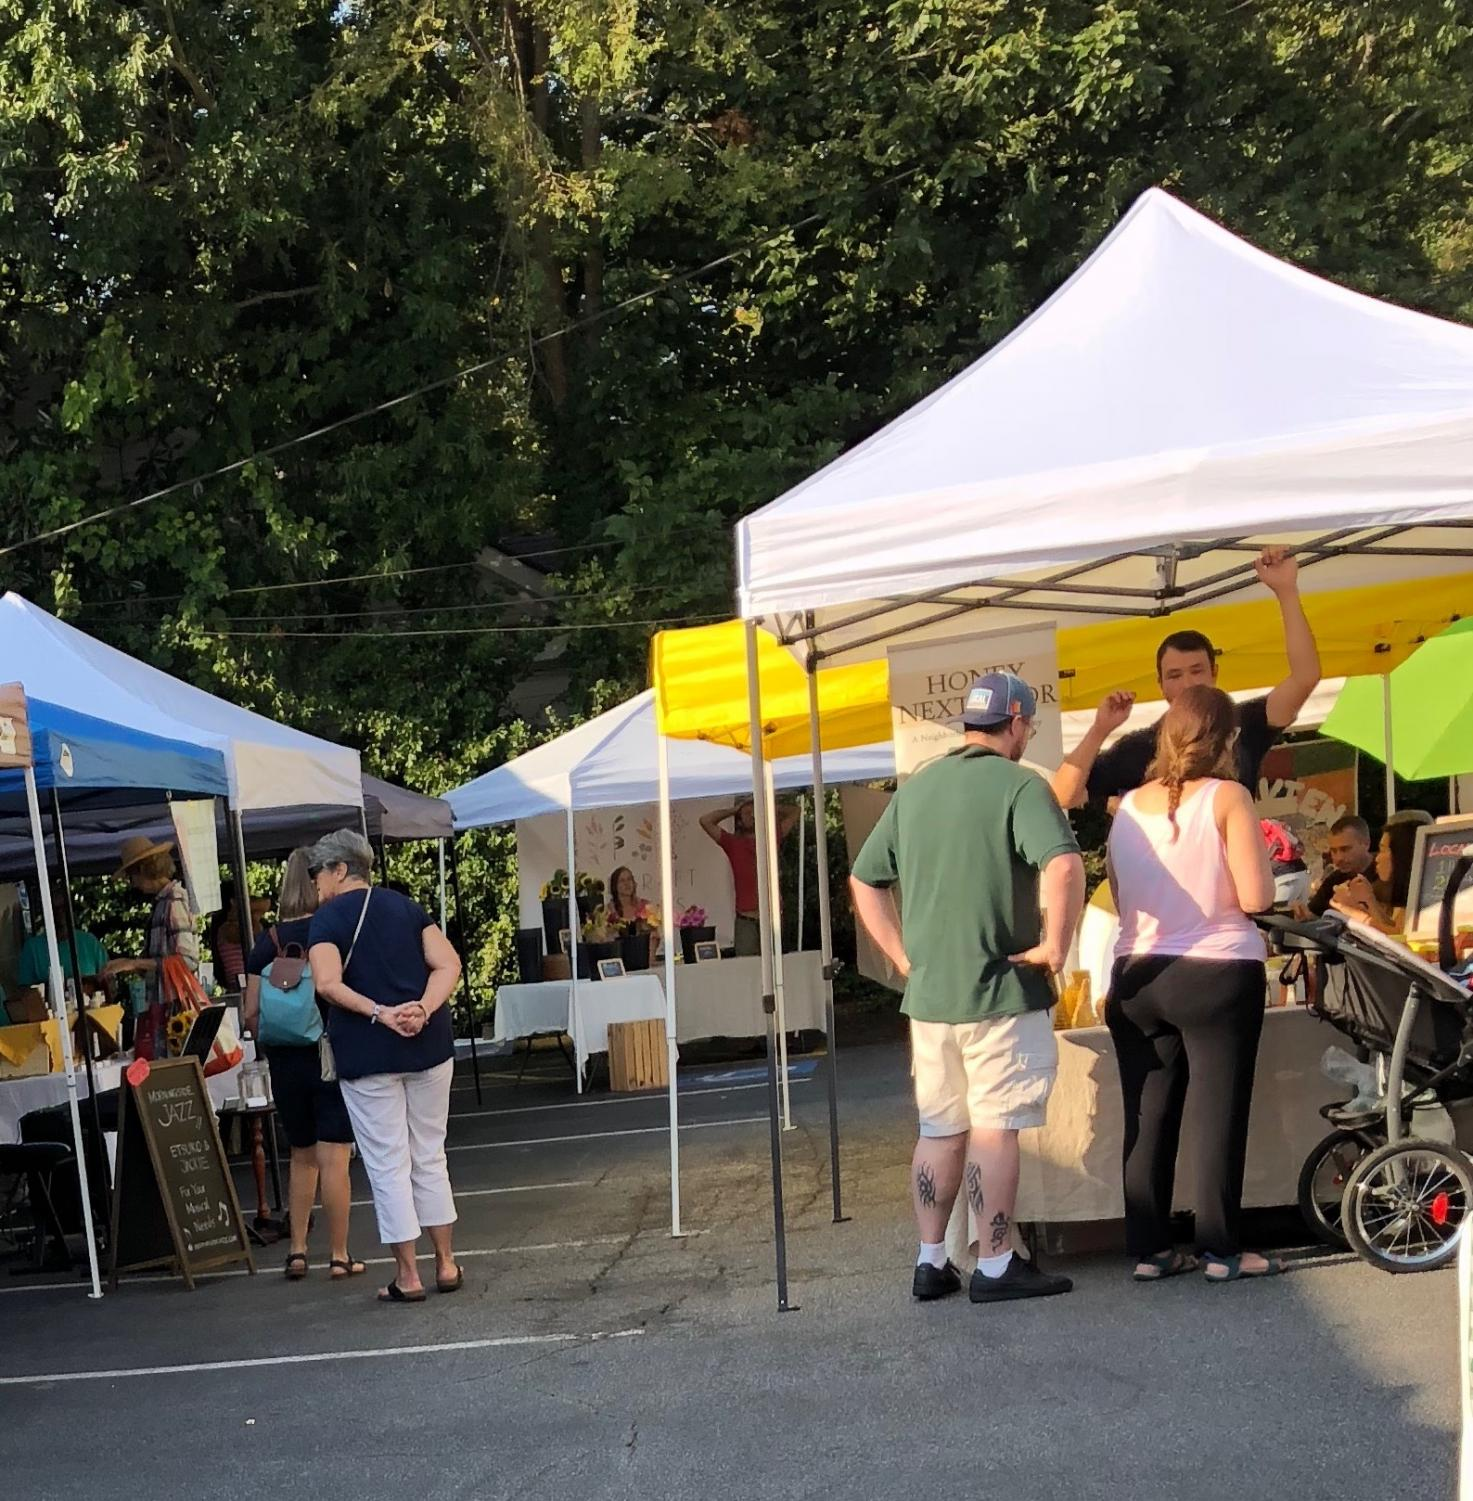 Shoppers browse for organic foods on an early fall morning during the weekly Morningside Farmers Market. The market opens every Saturday at 8 a.m.